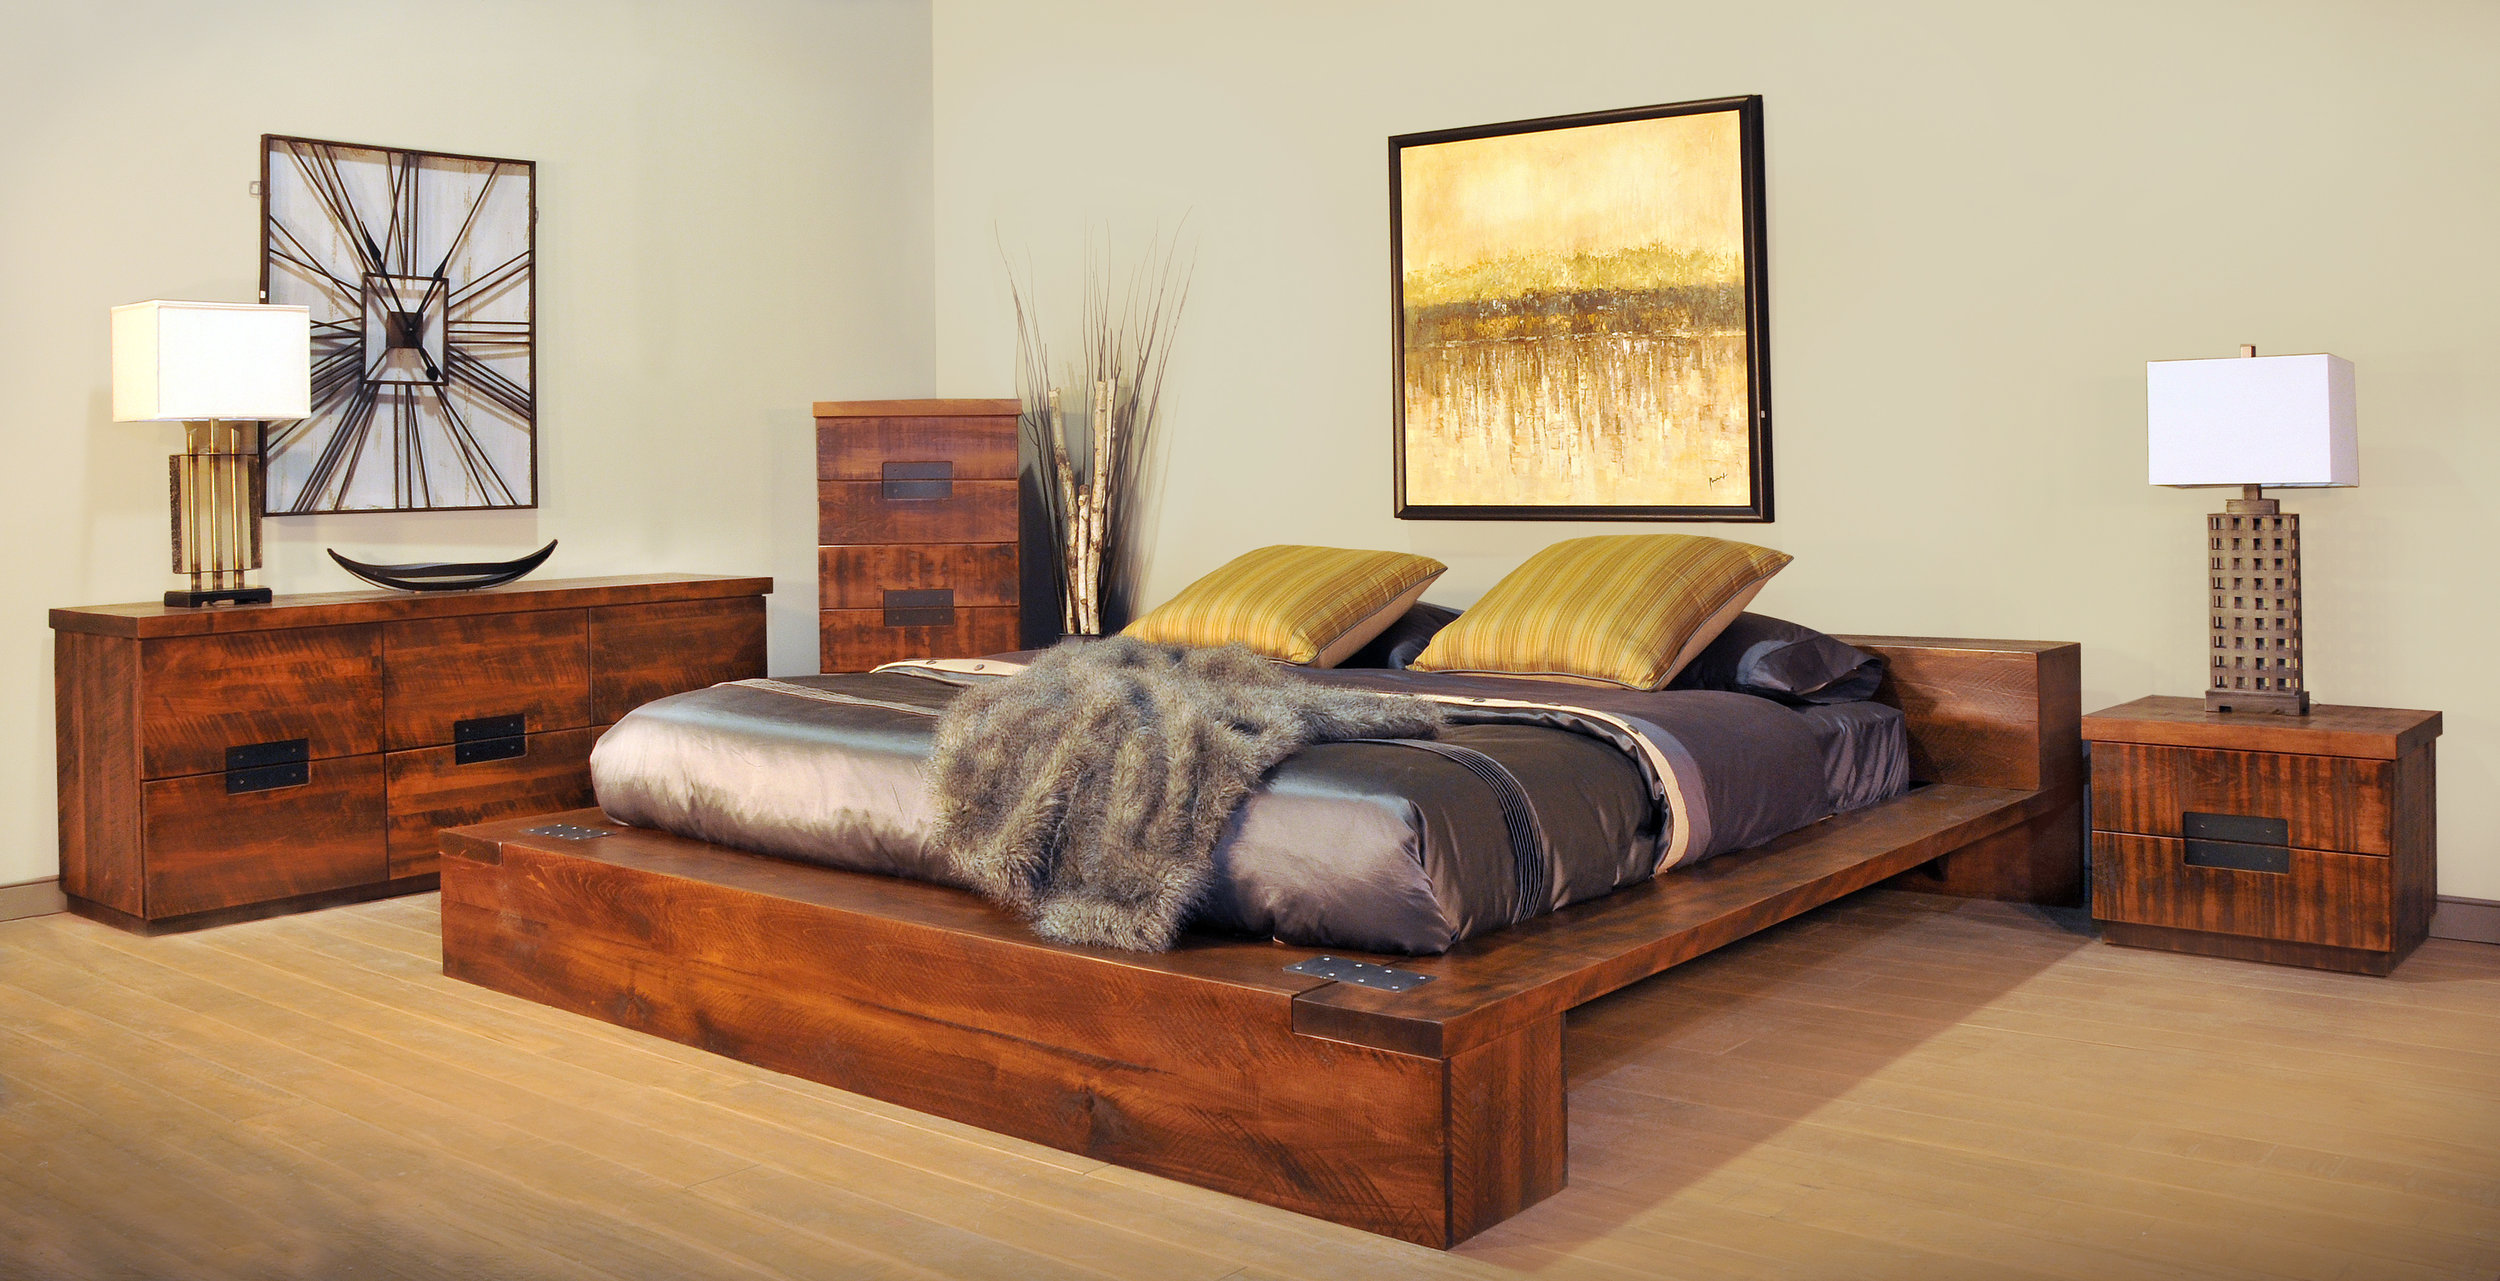 High Quality beds and dressers for sale from supplier